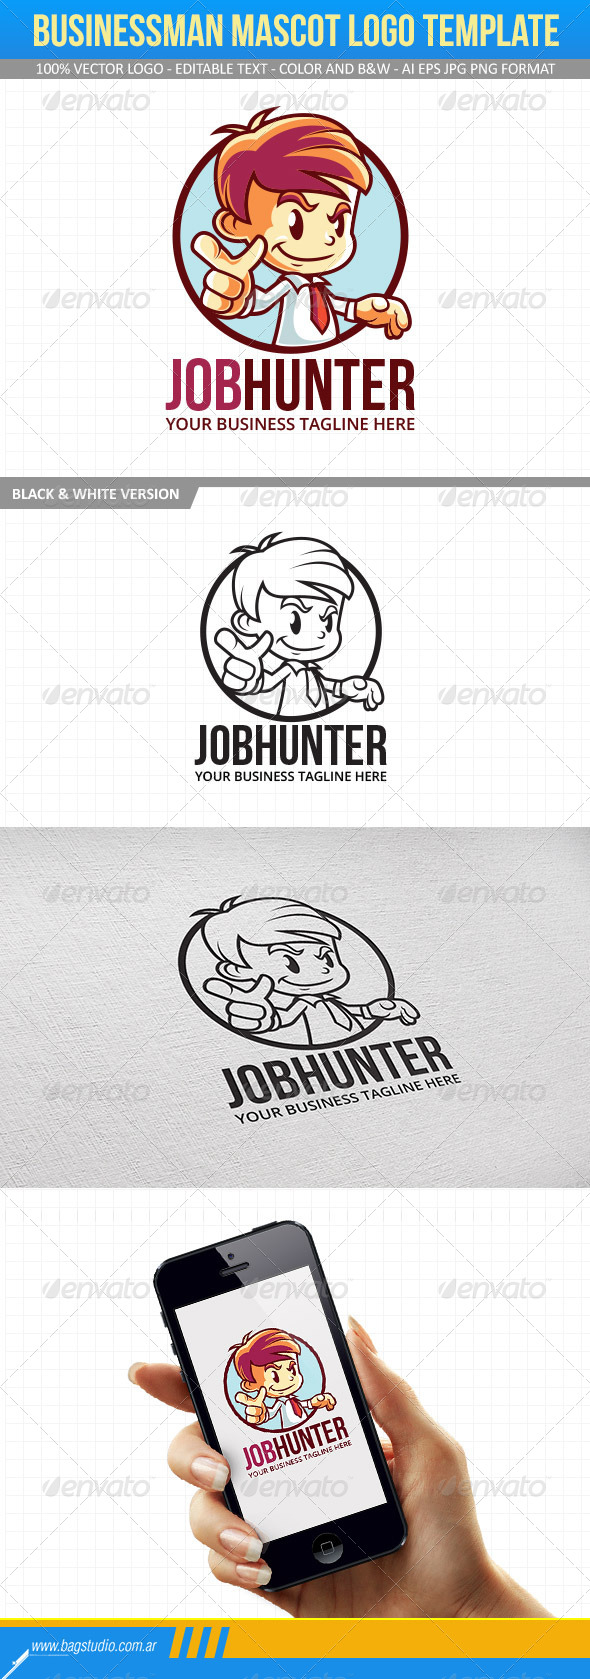 GraphicRiver Businessman Mascot Logo Template 7301431